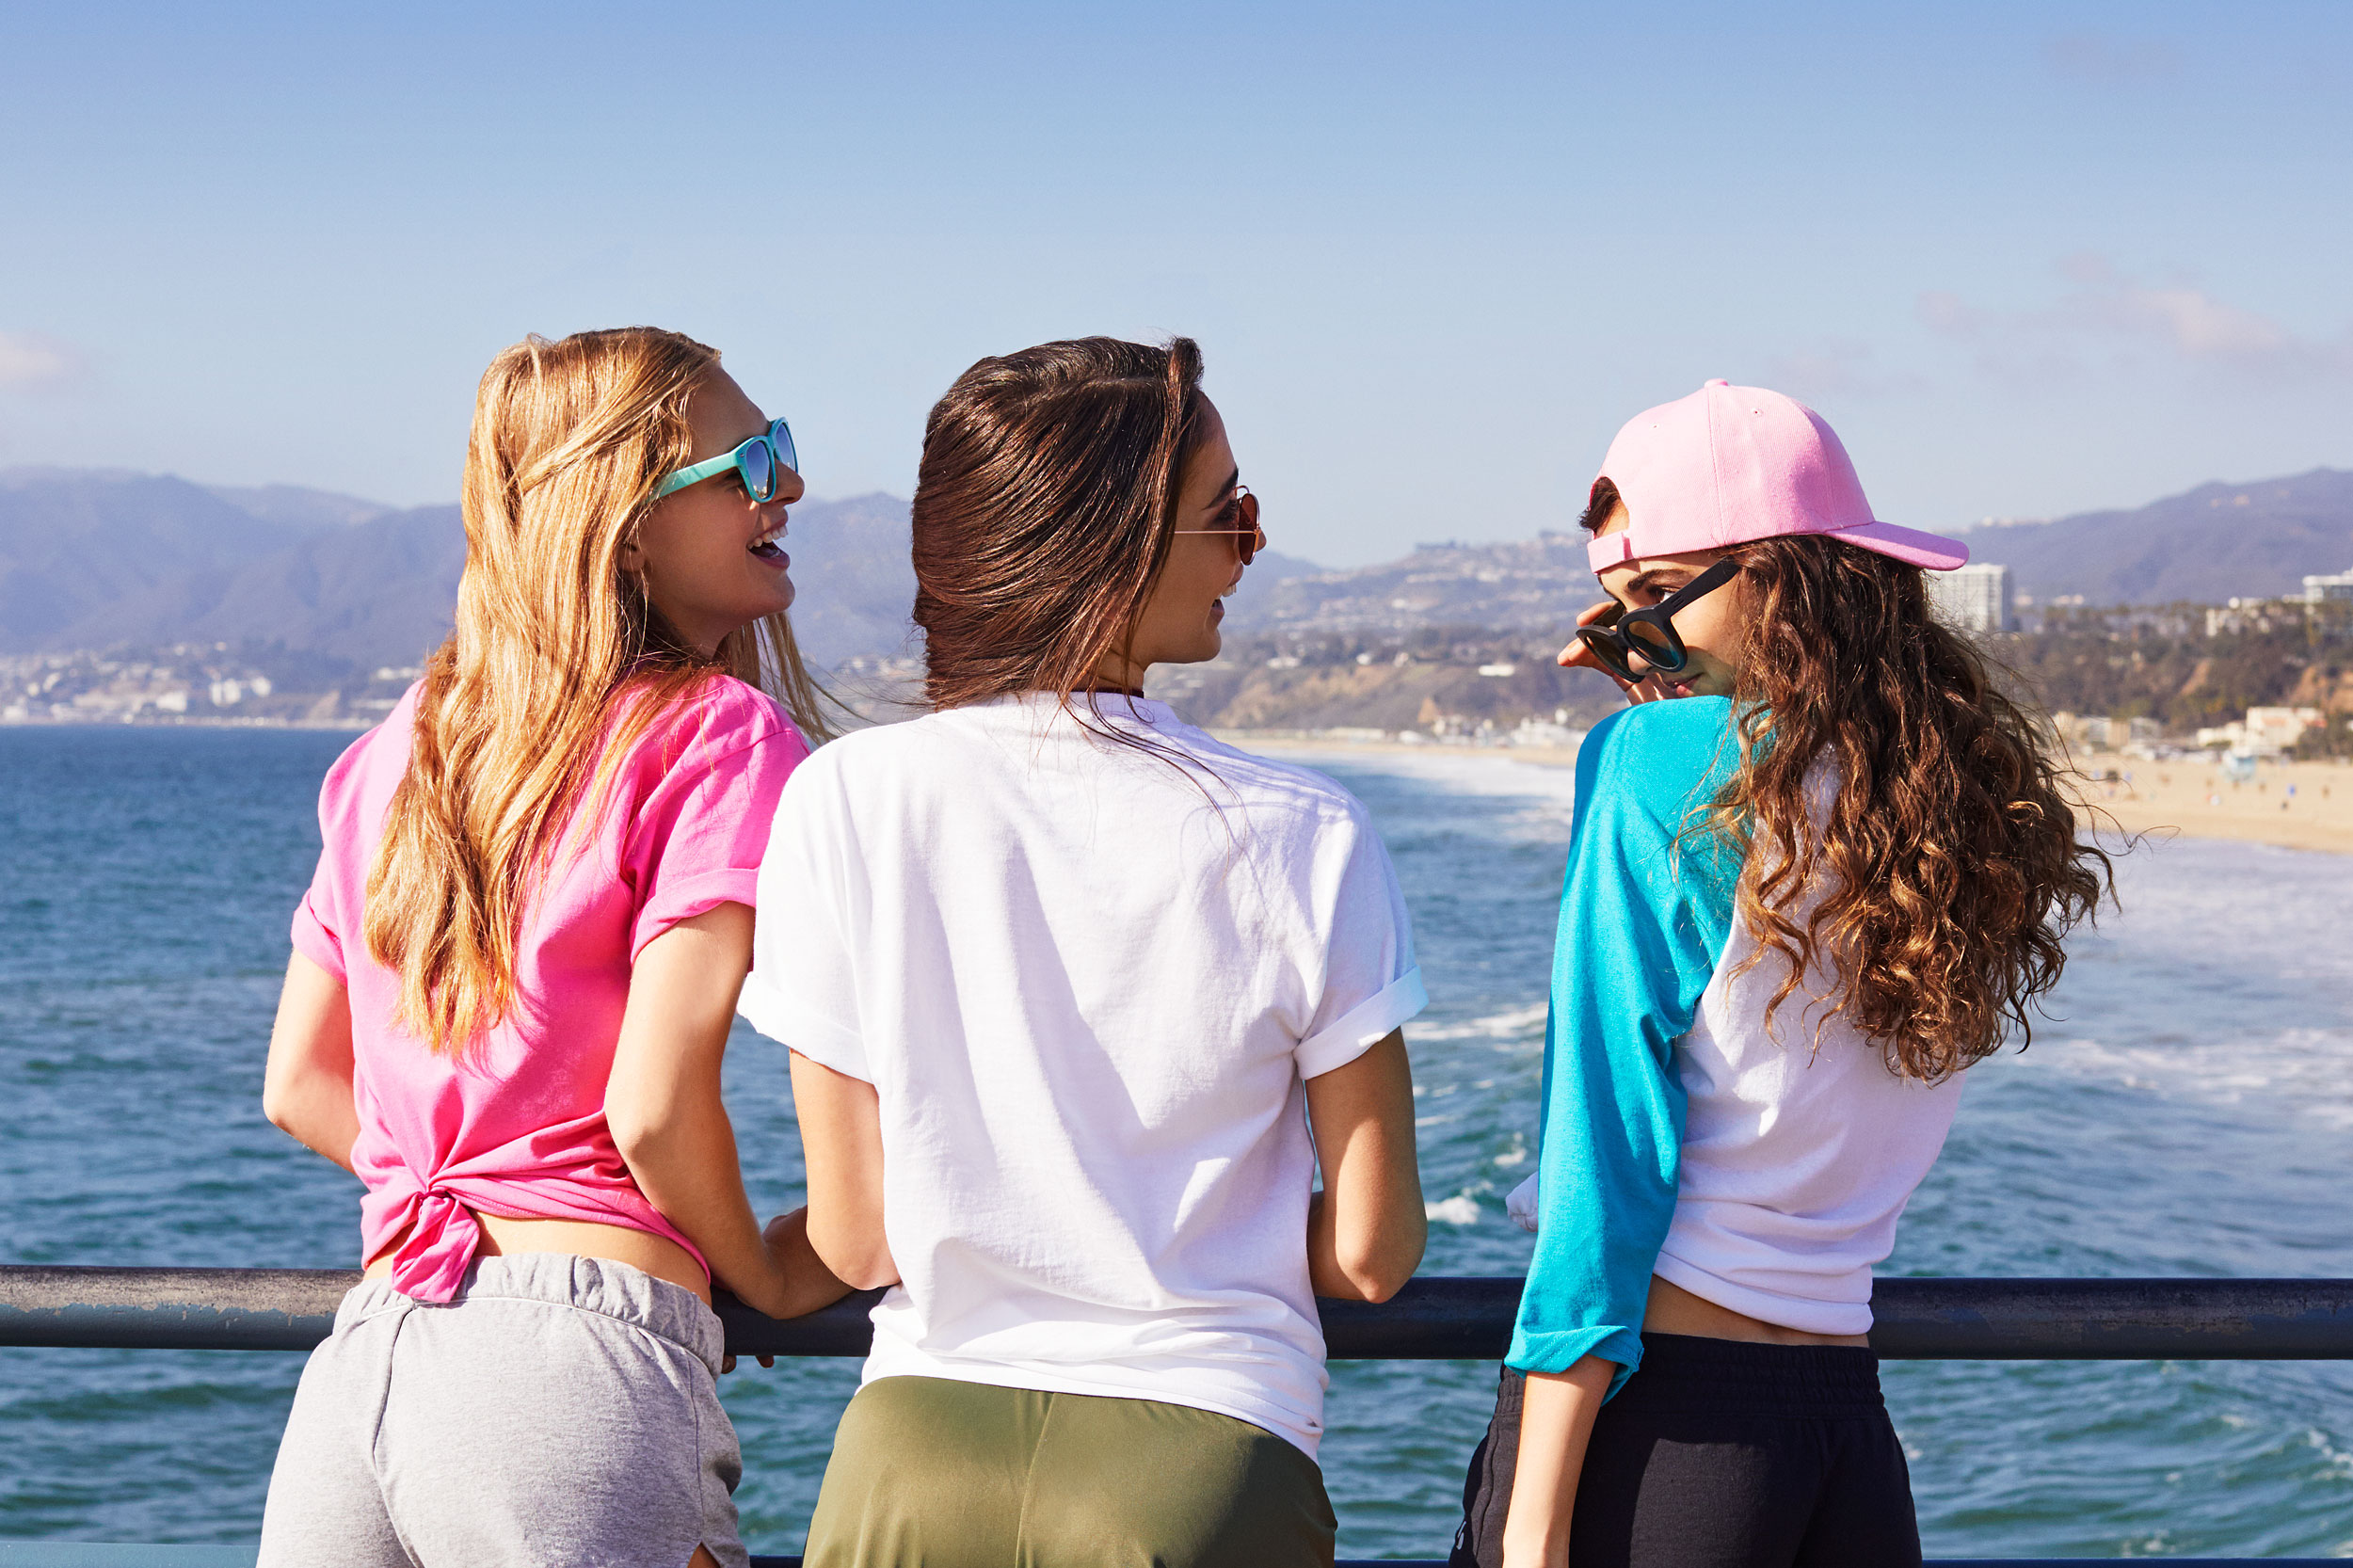 Girls laughing together on a pier facing the ocean - Kim Genevieve Los Angeles Lifestyle Photographer